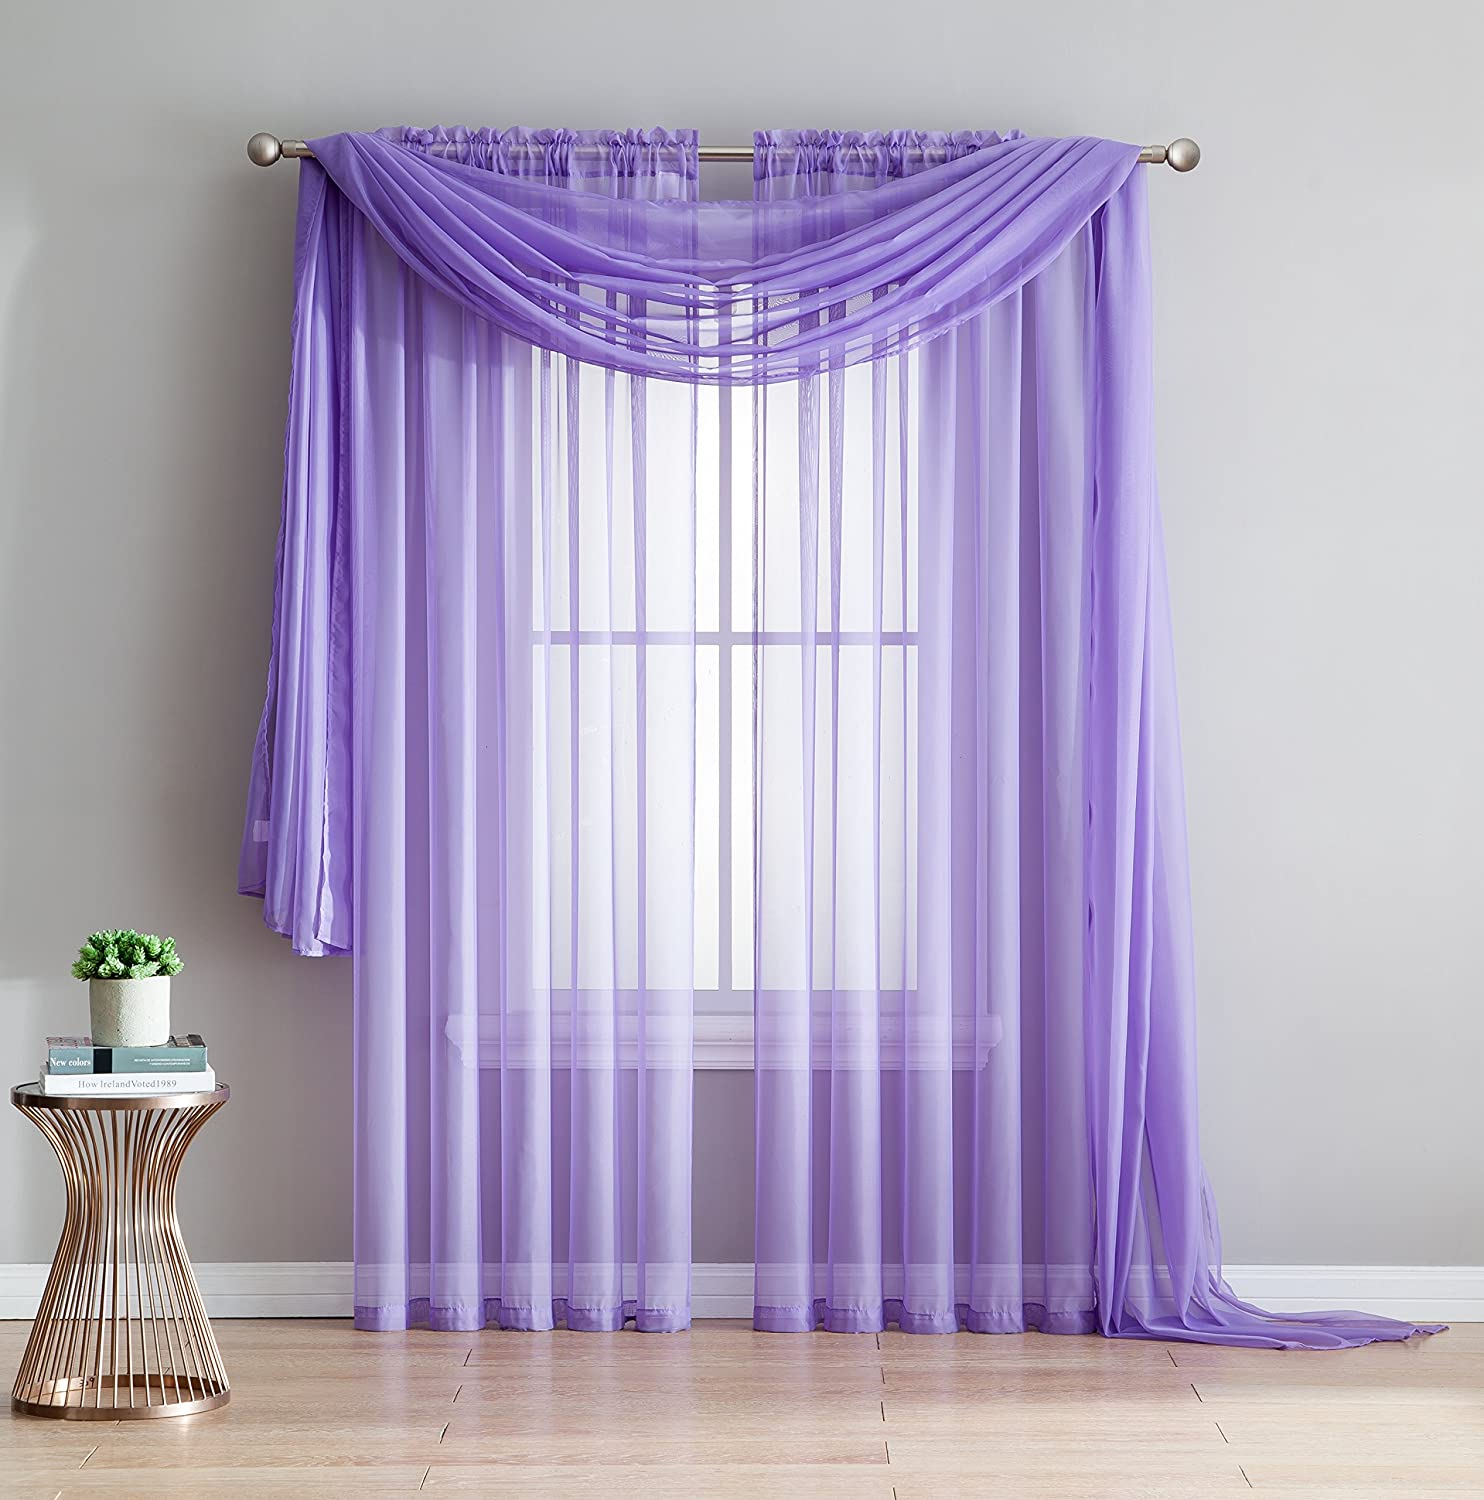 Amazing Sheer - 2-Piece Rod Pocket Sheer Panel Curtains Fabric Sheer - Voile Curtains